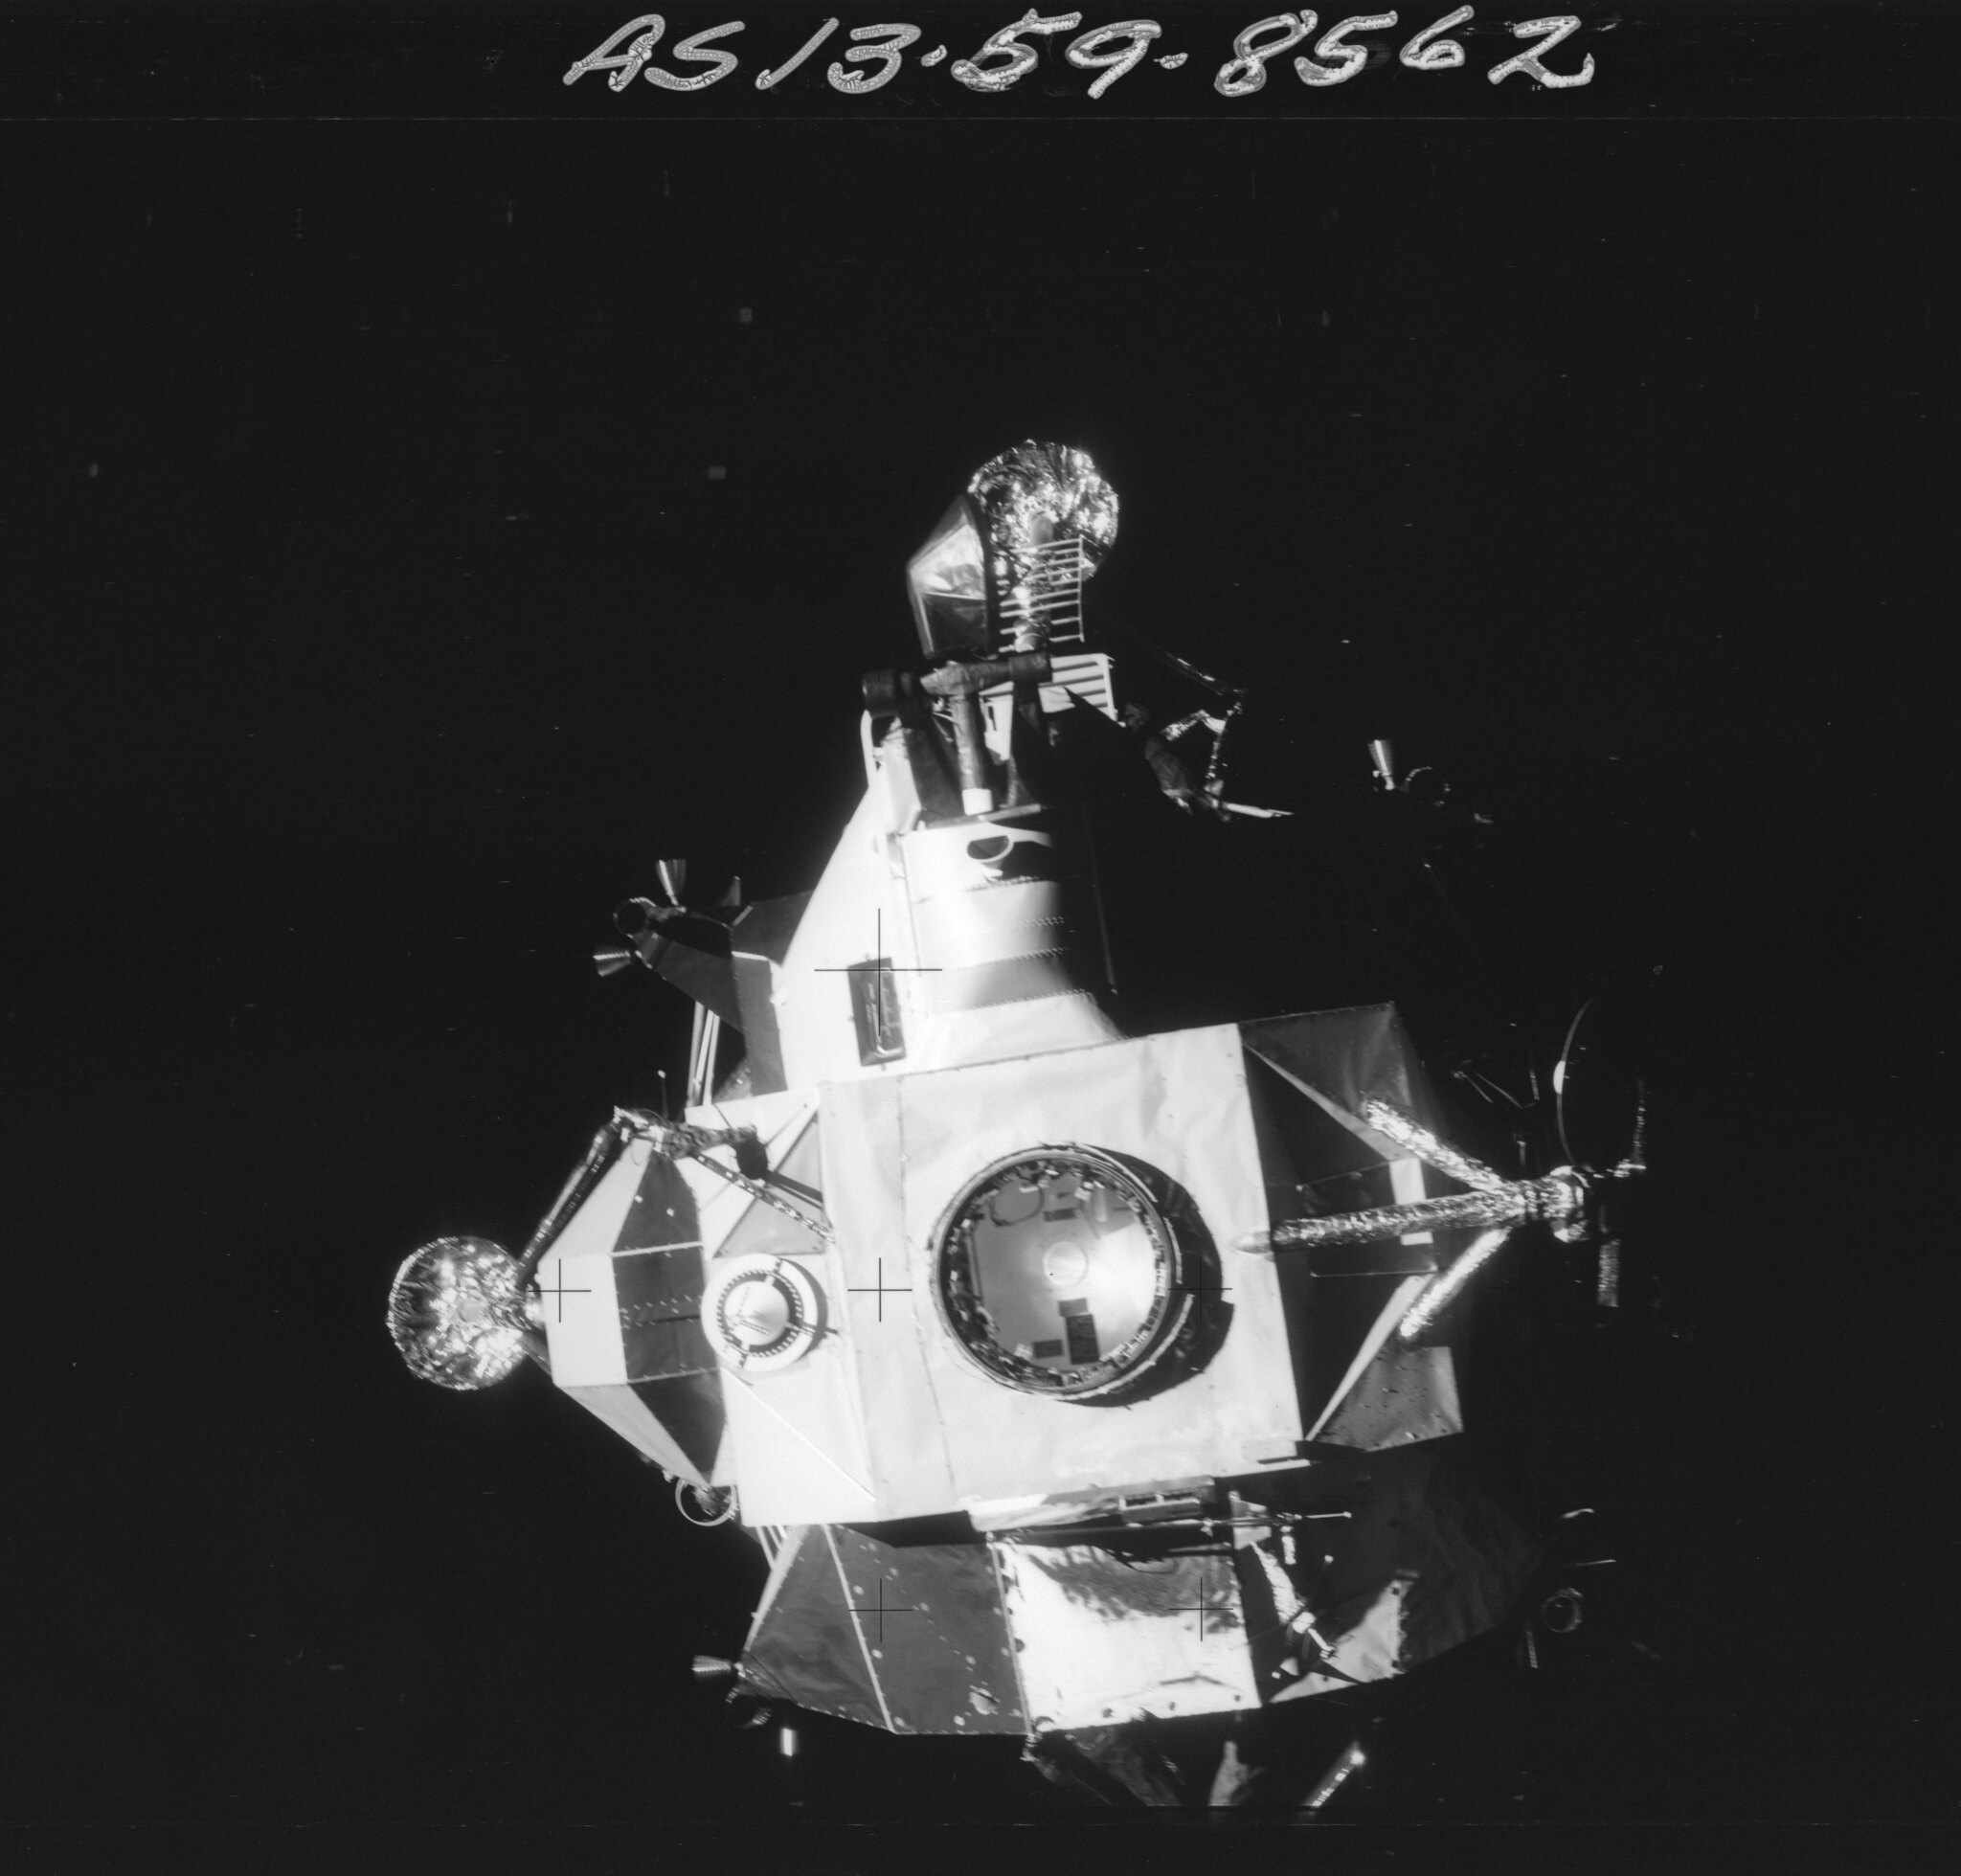 AS13-59-8562 Apollo 13 Hasselblad image from film magazine 59/R - Transfer from LM to CM; LM undocking prior to reentry